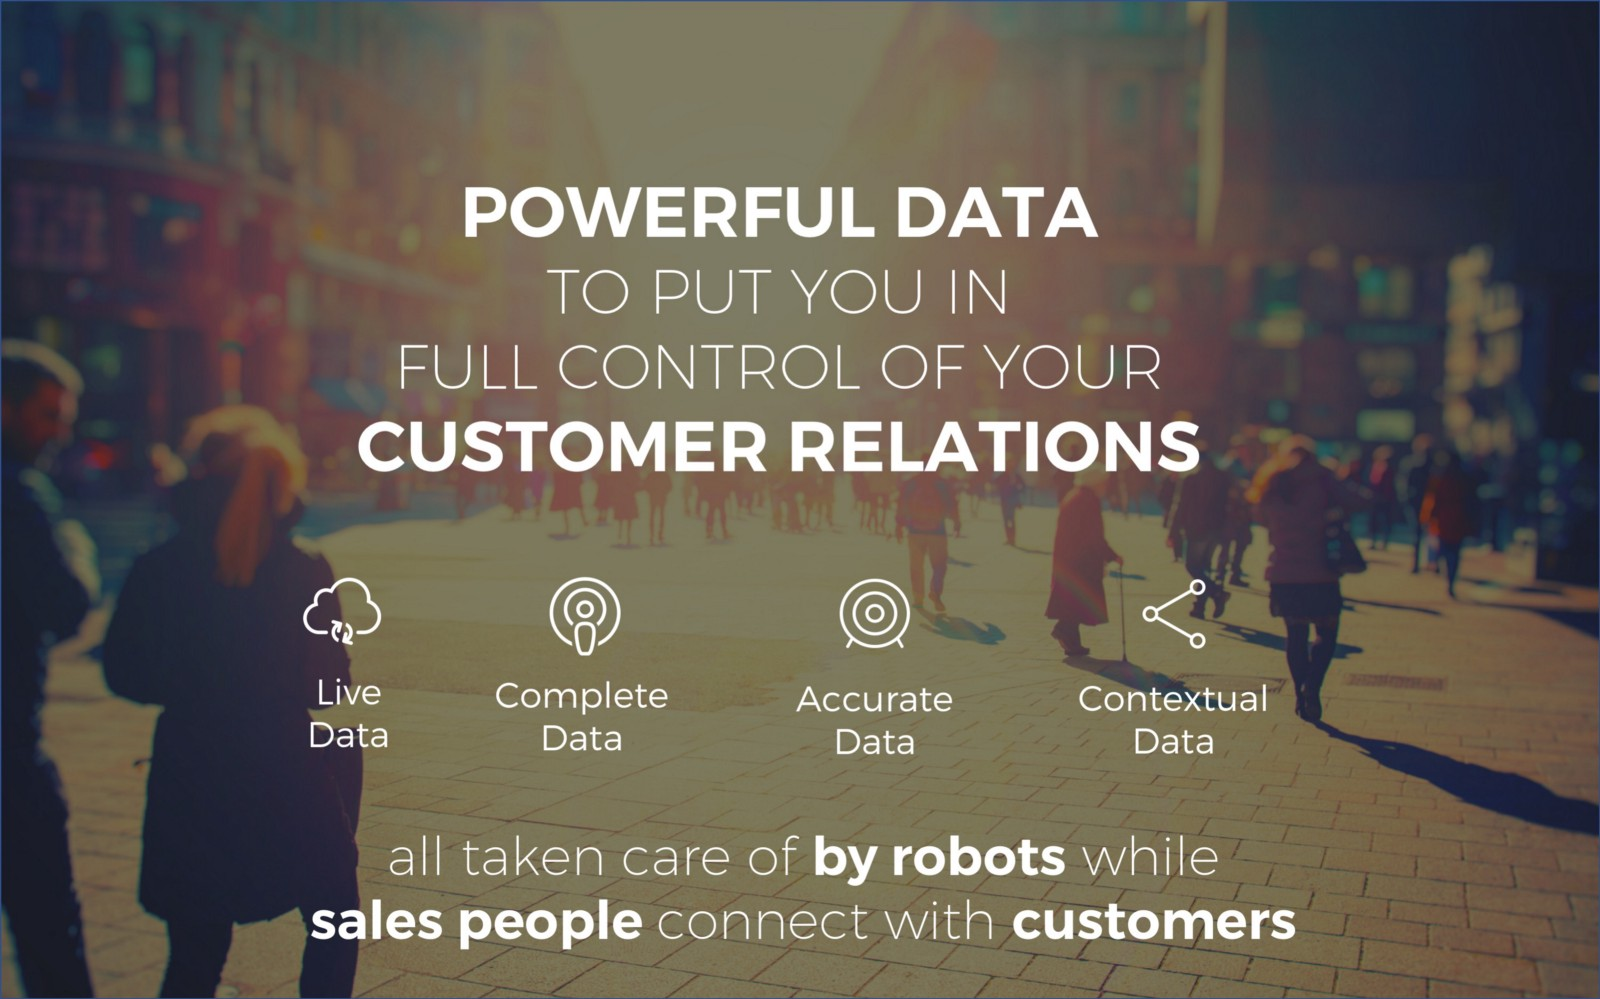 Powerful data to put you in full control of your customer relations - Salesflare sales deck